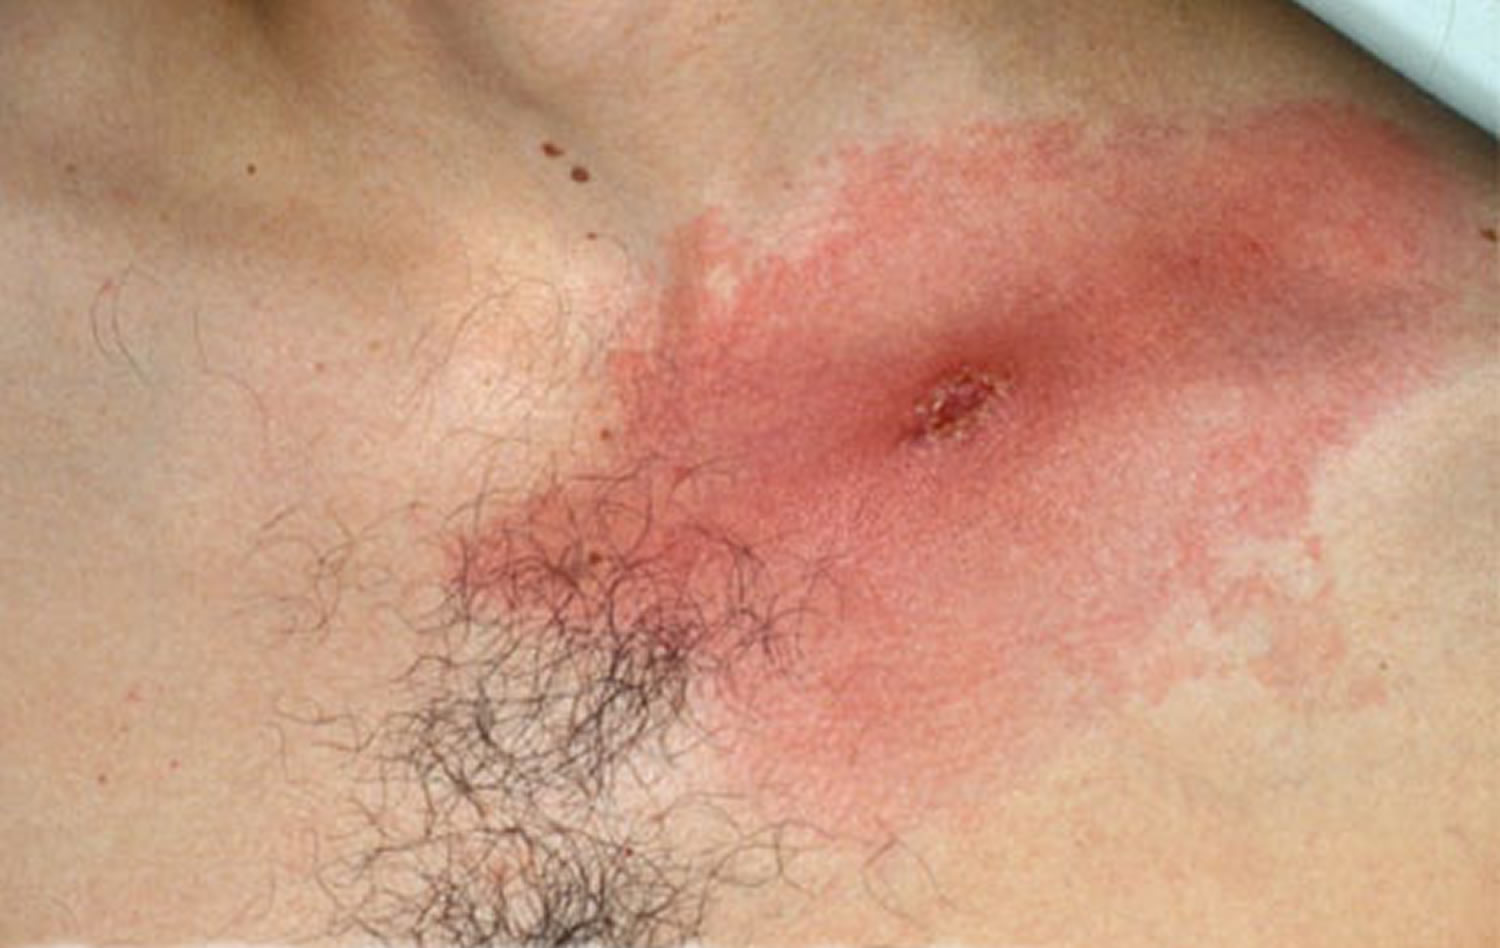 expanding lyme disease rash with central crust